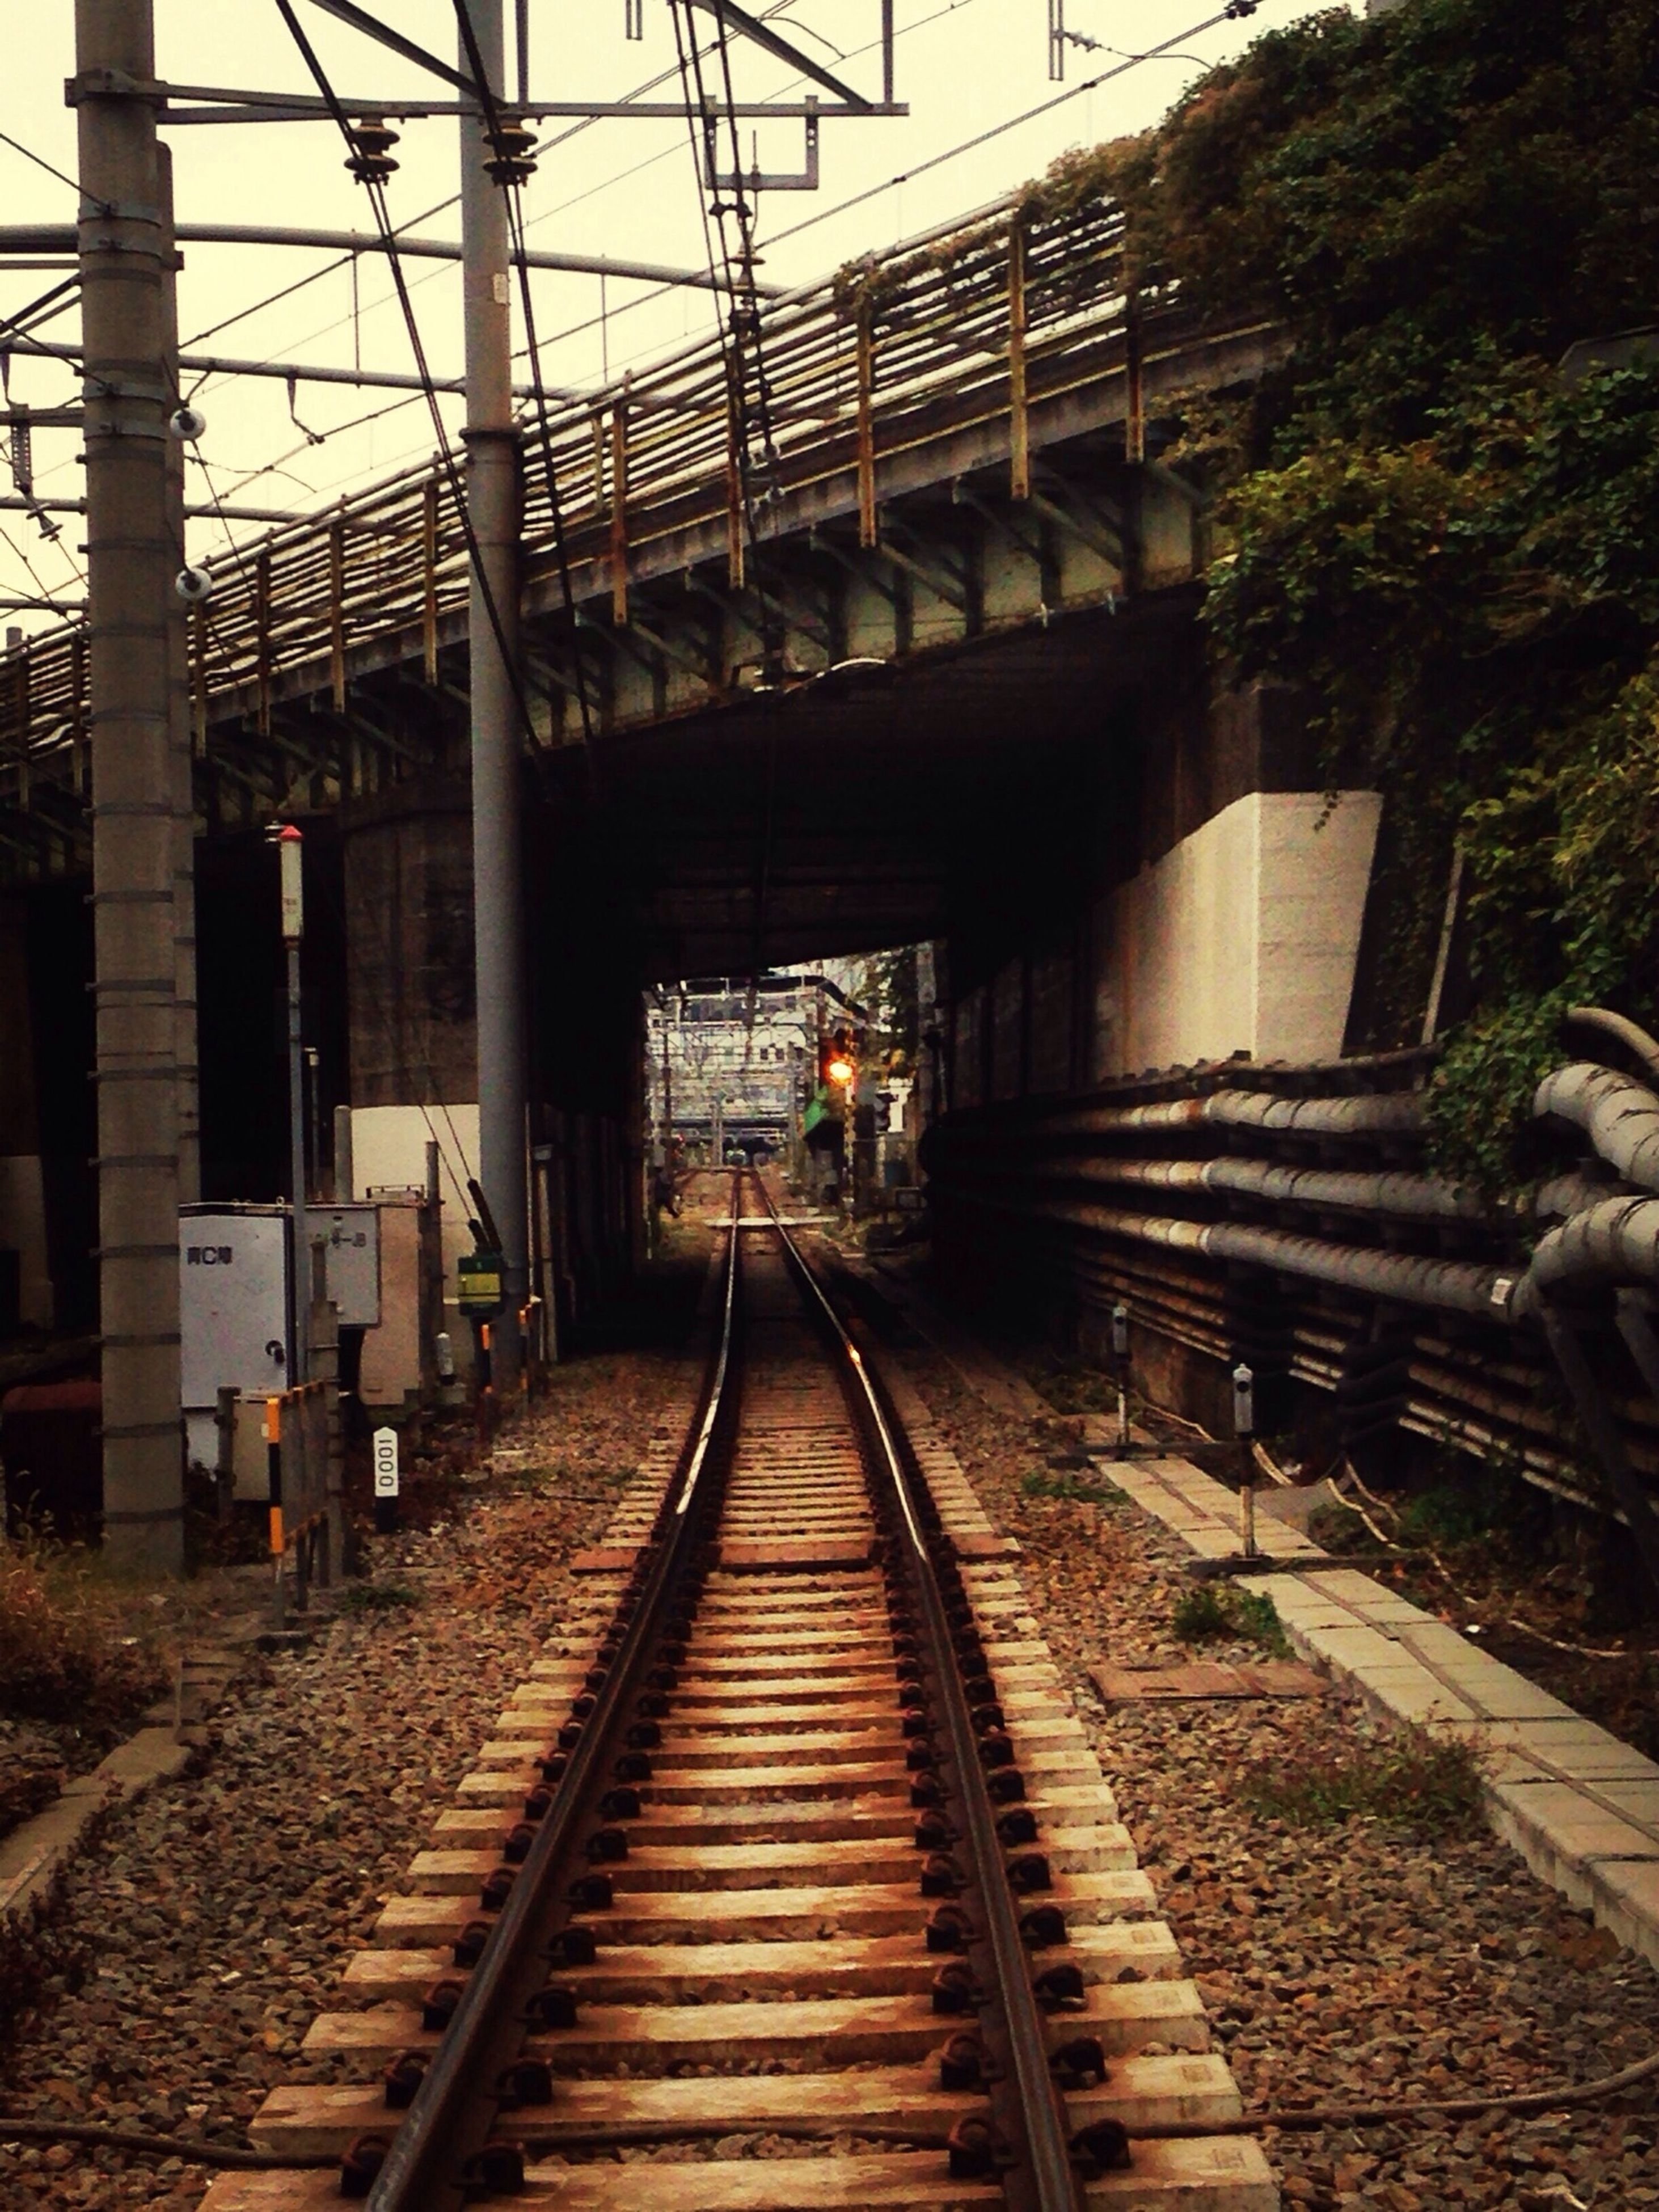 railroad track, the way forward, rail transportation, transportation, diminishing perspective, built structure, architecture, vanishing point, public transportation, railroad station platform, railroad station, railway track, long, connection, sky, building exterior, day, no people, outdoors, straight